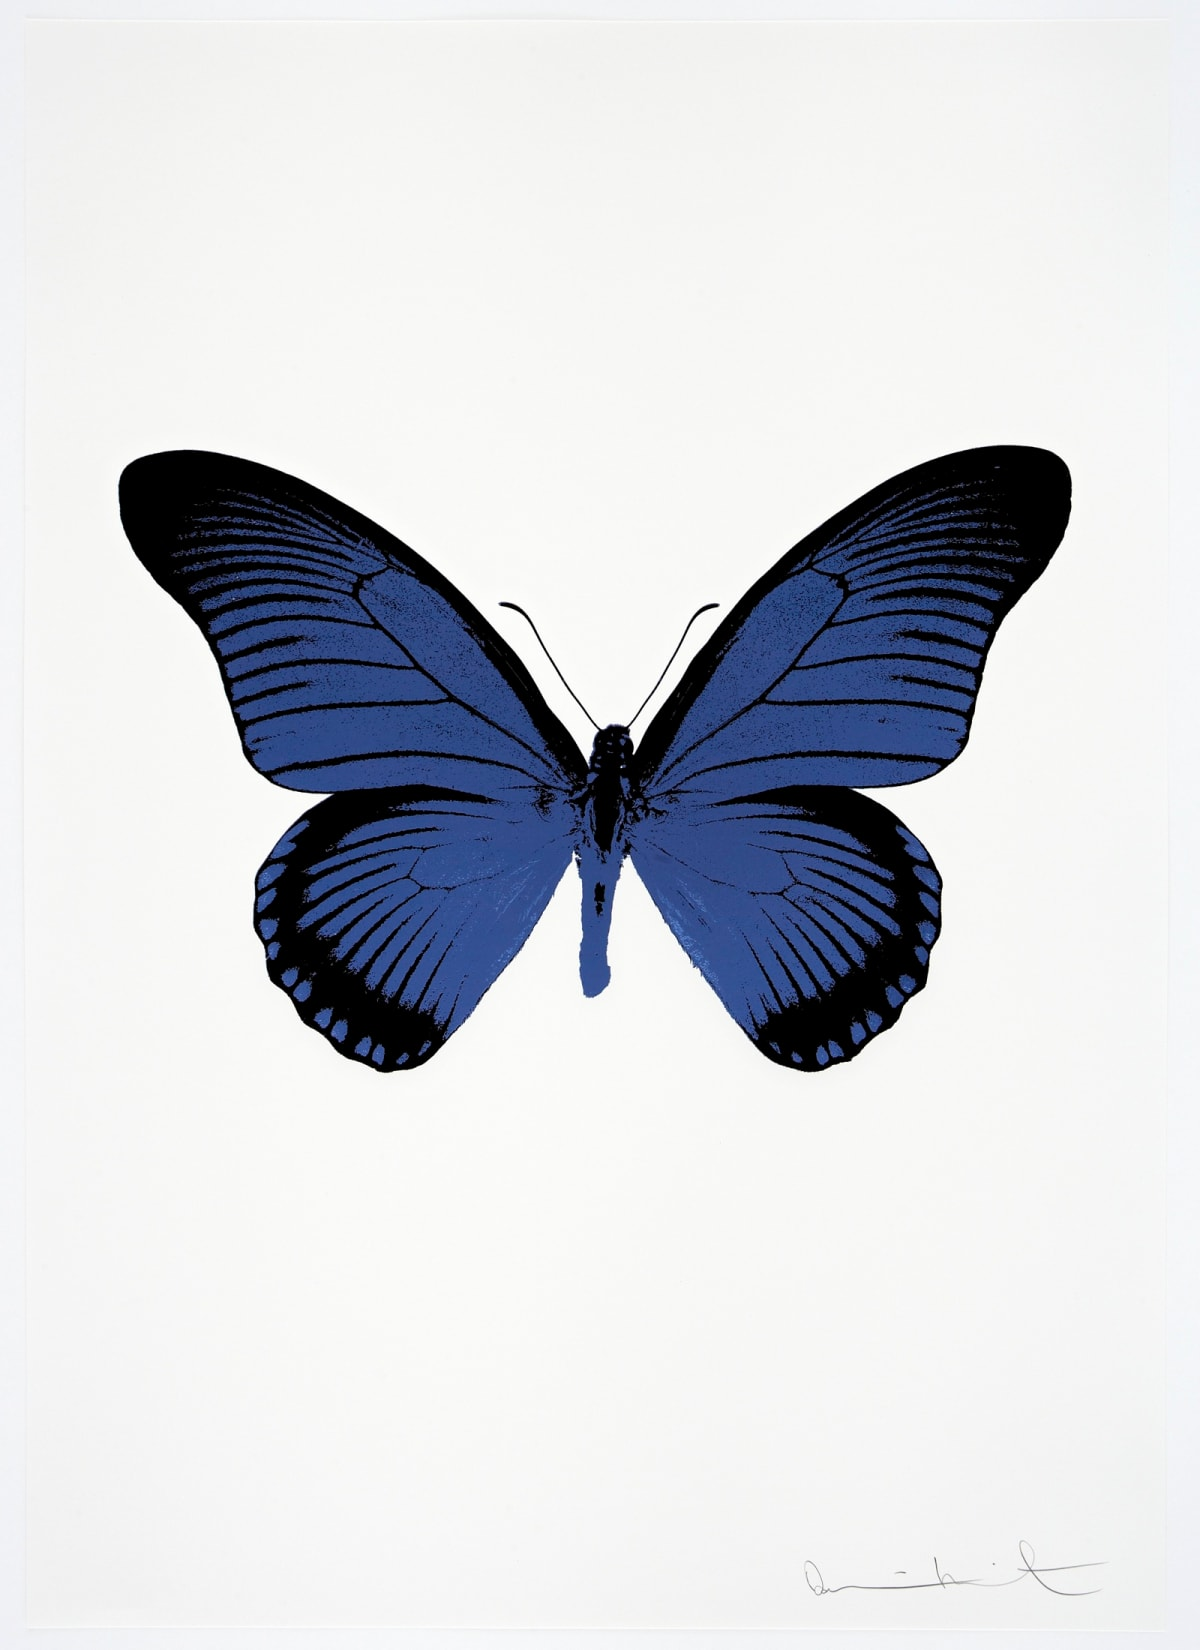 Damien Hirst The Souls IV - Frost Blue/Raven Black Damien Hirst butterfly foil print for sale Damien Hirst print for sale , 2010 2 colour foil block on 300gsm Arches 88 archival paper. Signed and numbered. Published by Paul Stolper and Other Criteria 72 x 51cm OC7982 /1418-5 Edition of 15